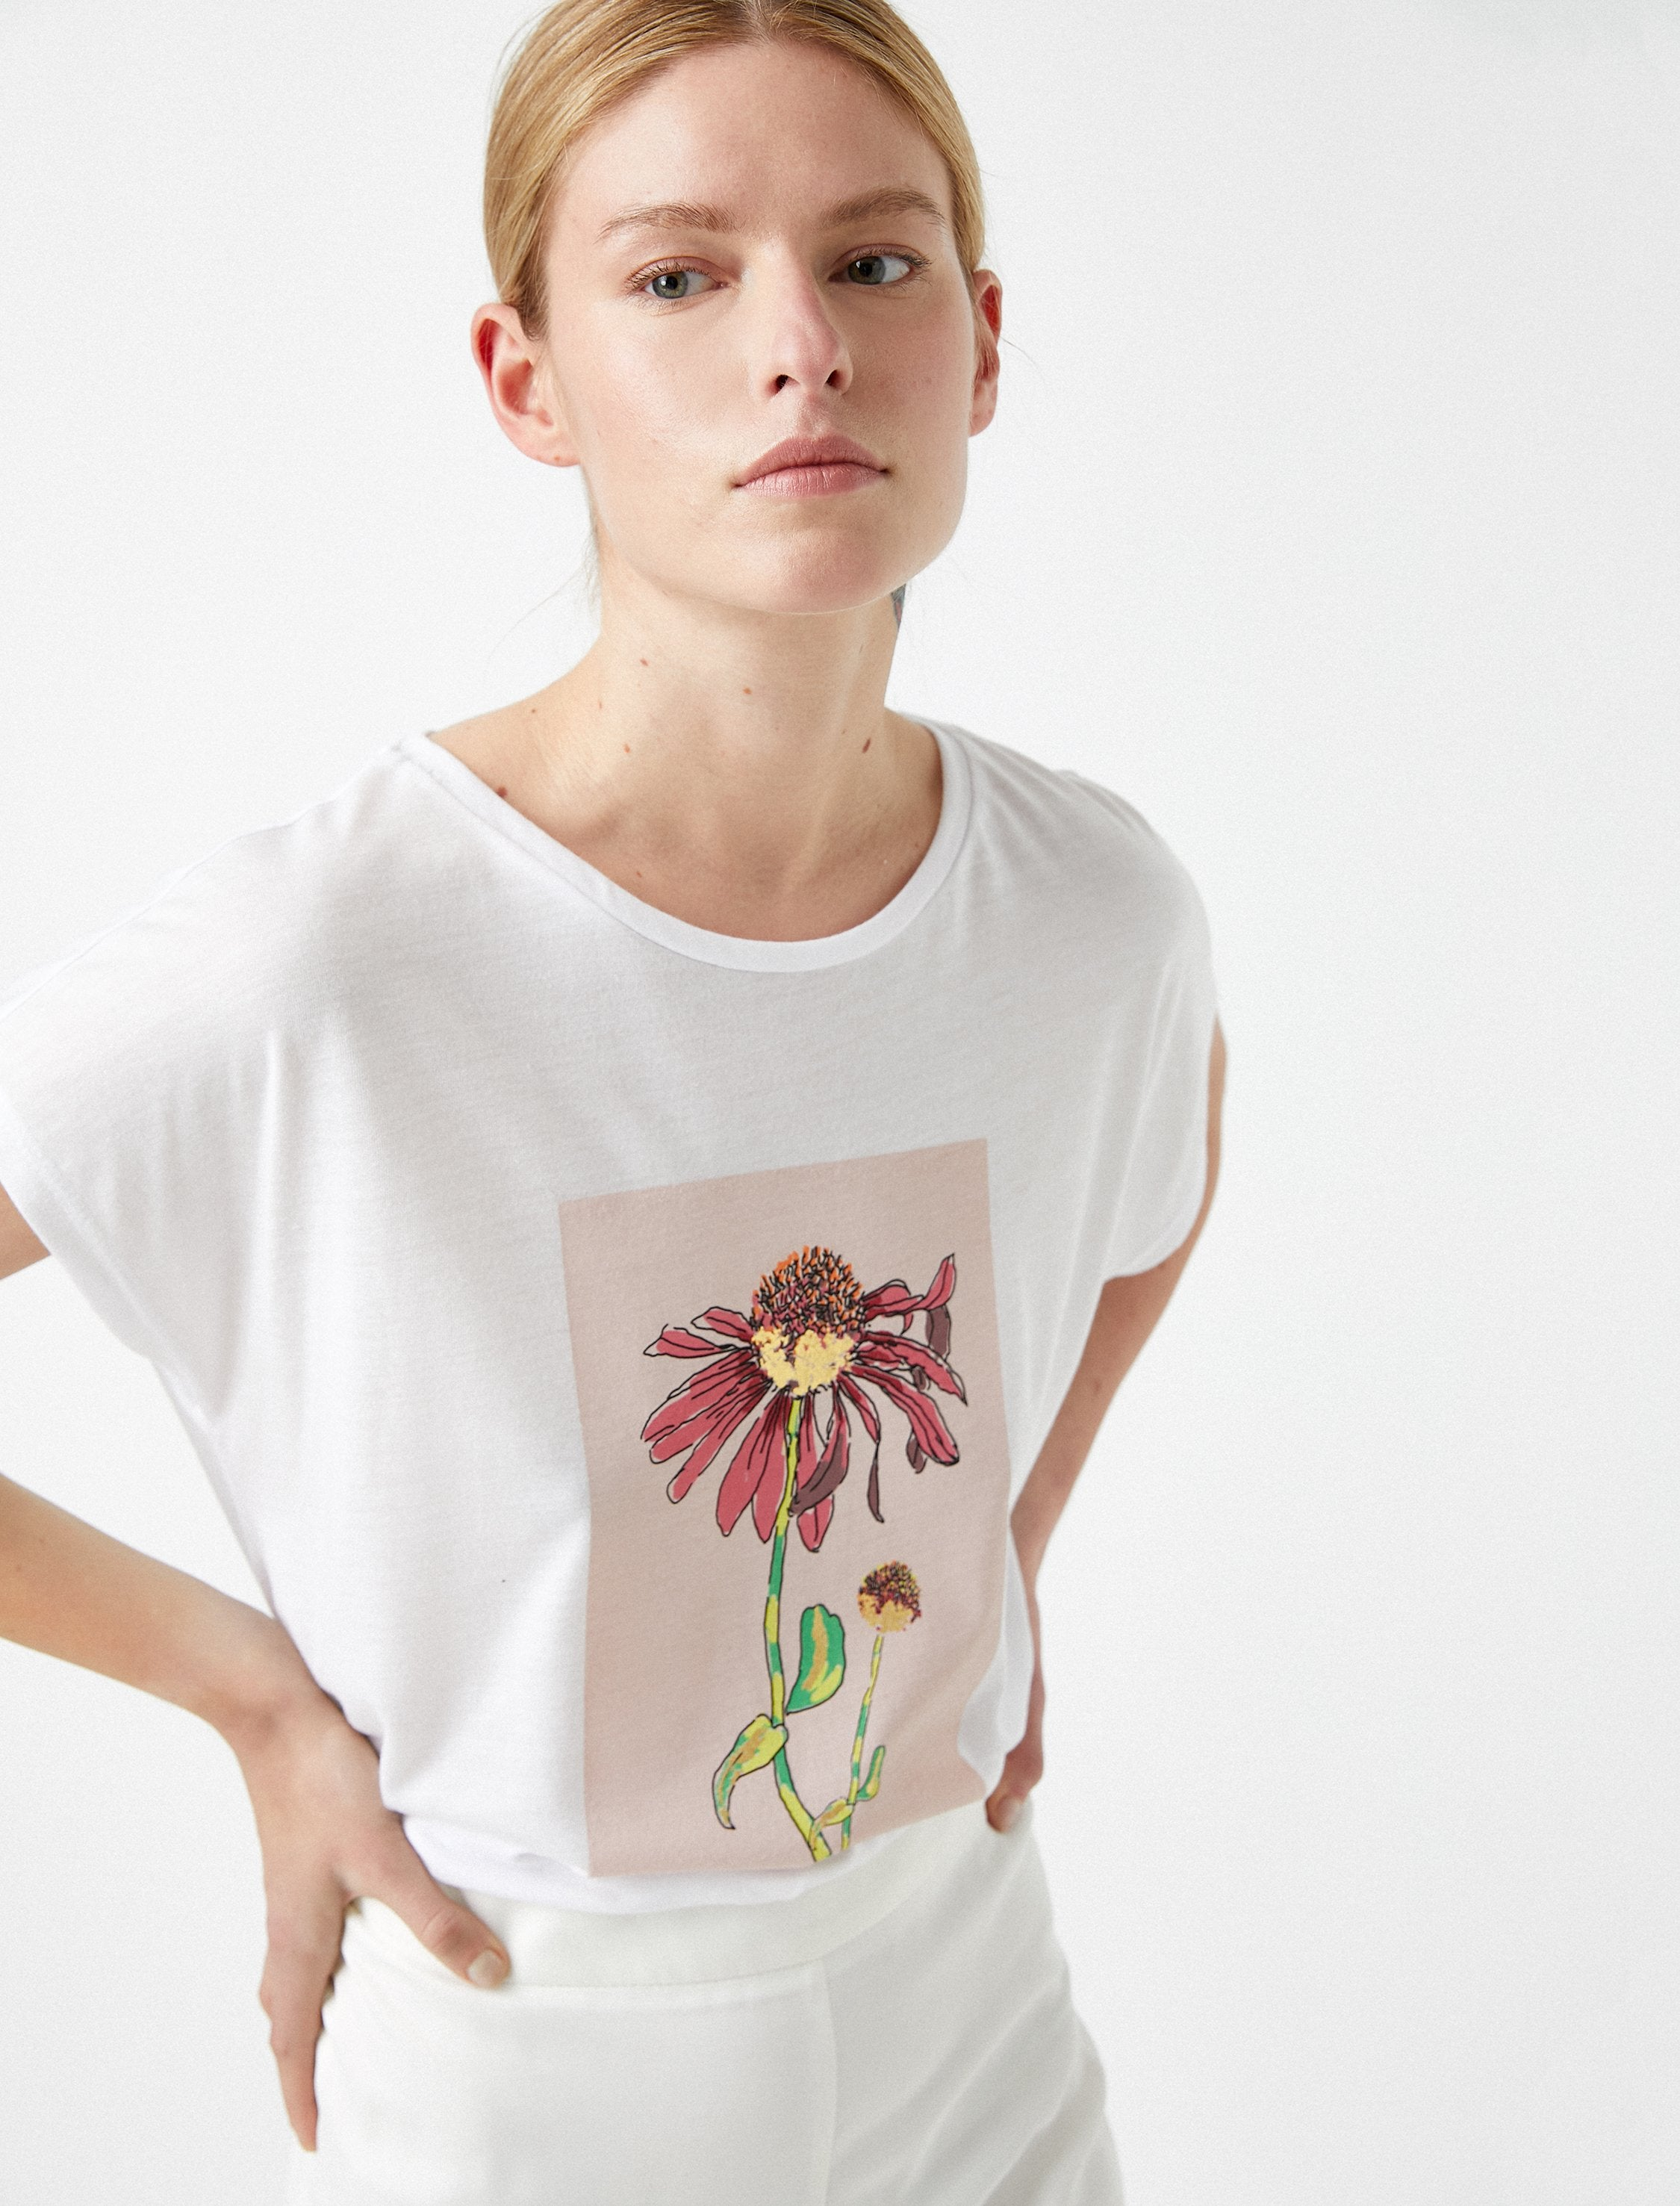 Dead SunFlower Graphic Tshirt in White